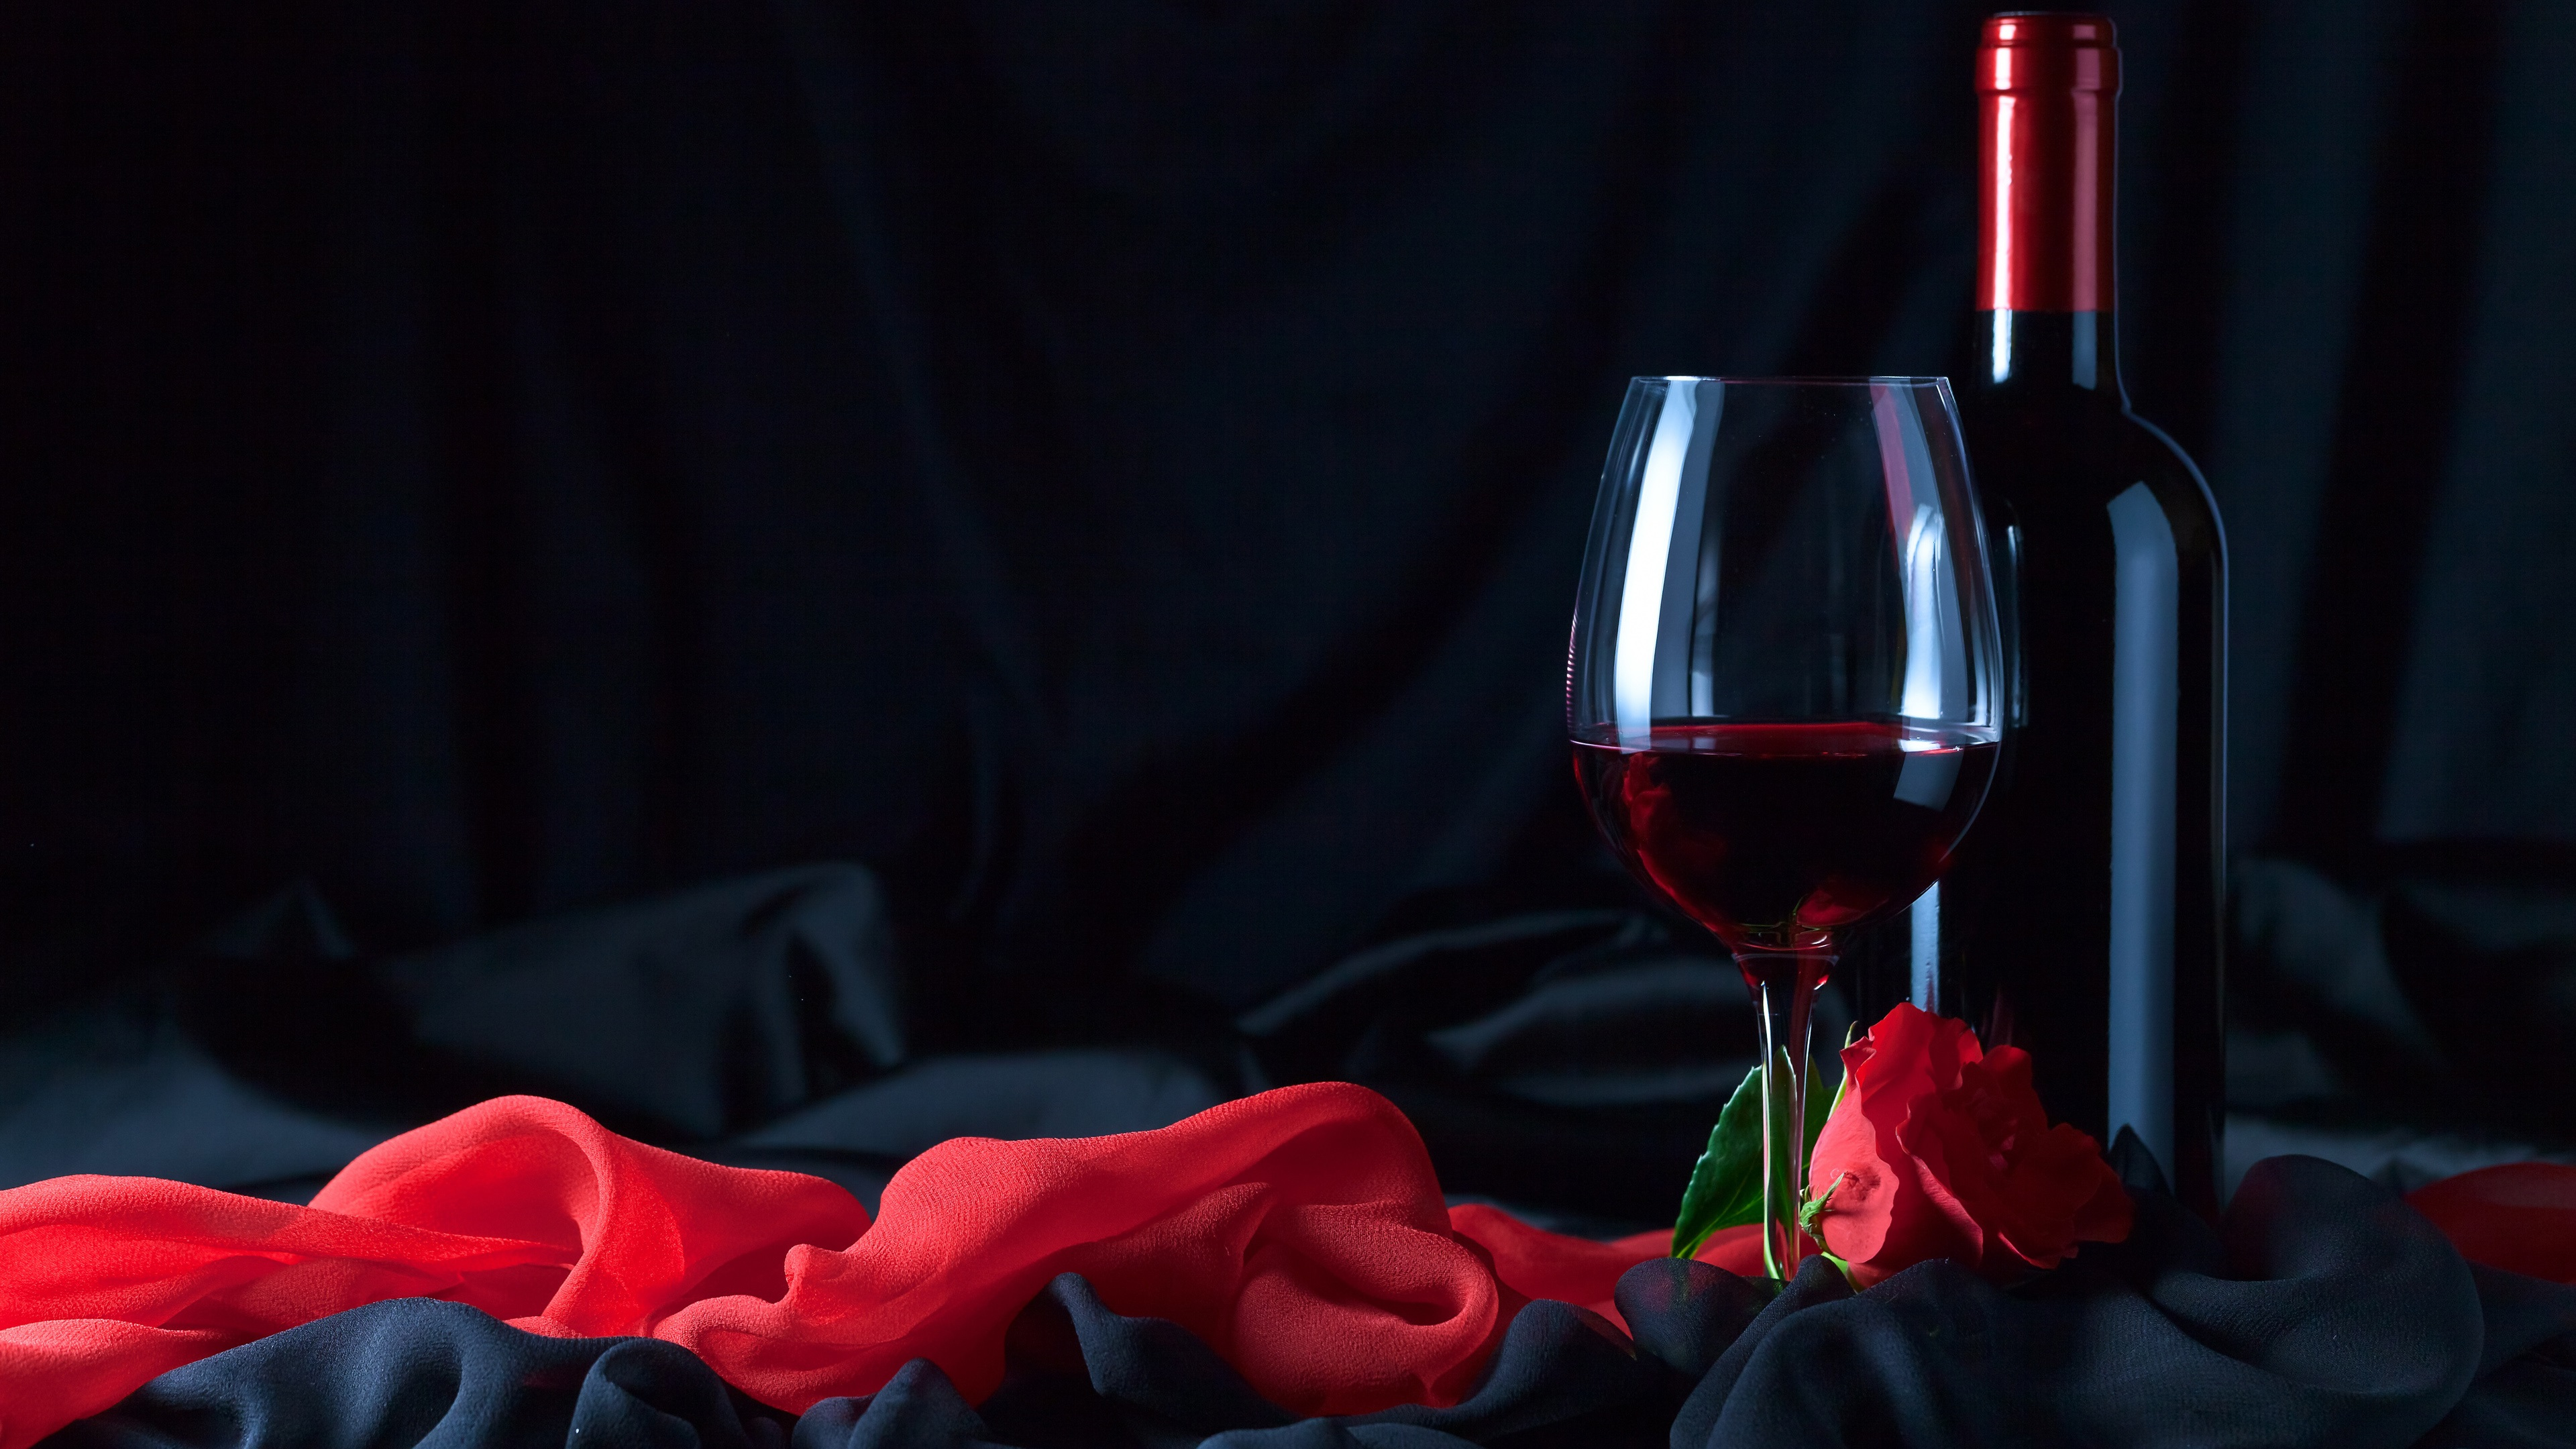 Wallpaper Wine Bottle Glass Cup Red Rose Cloth 3840x2160